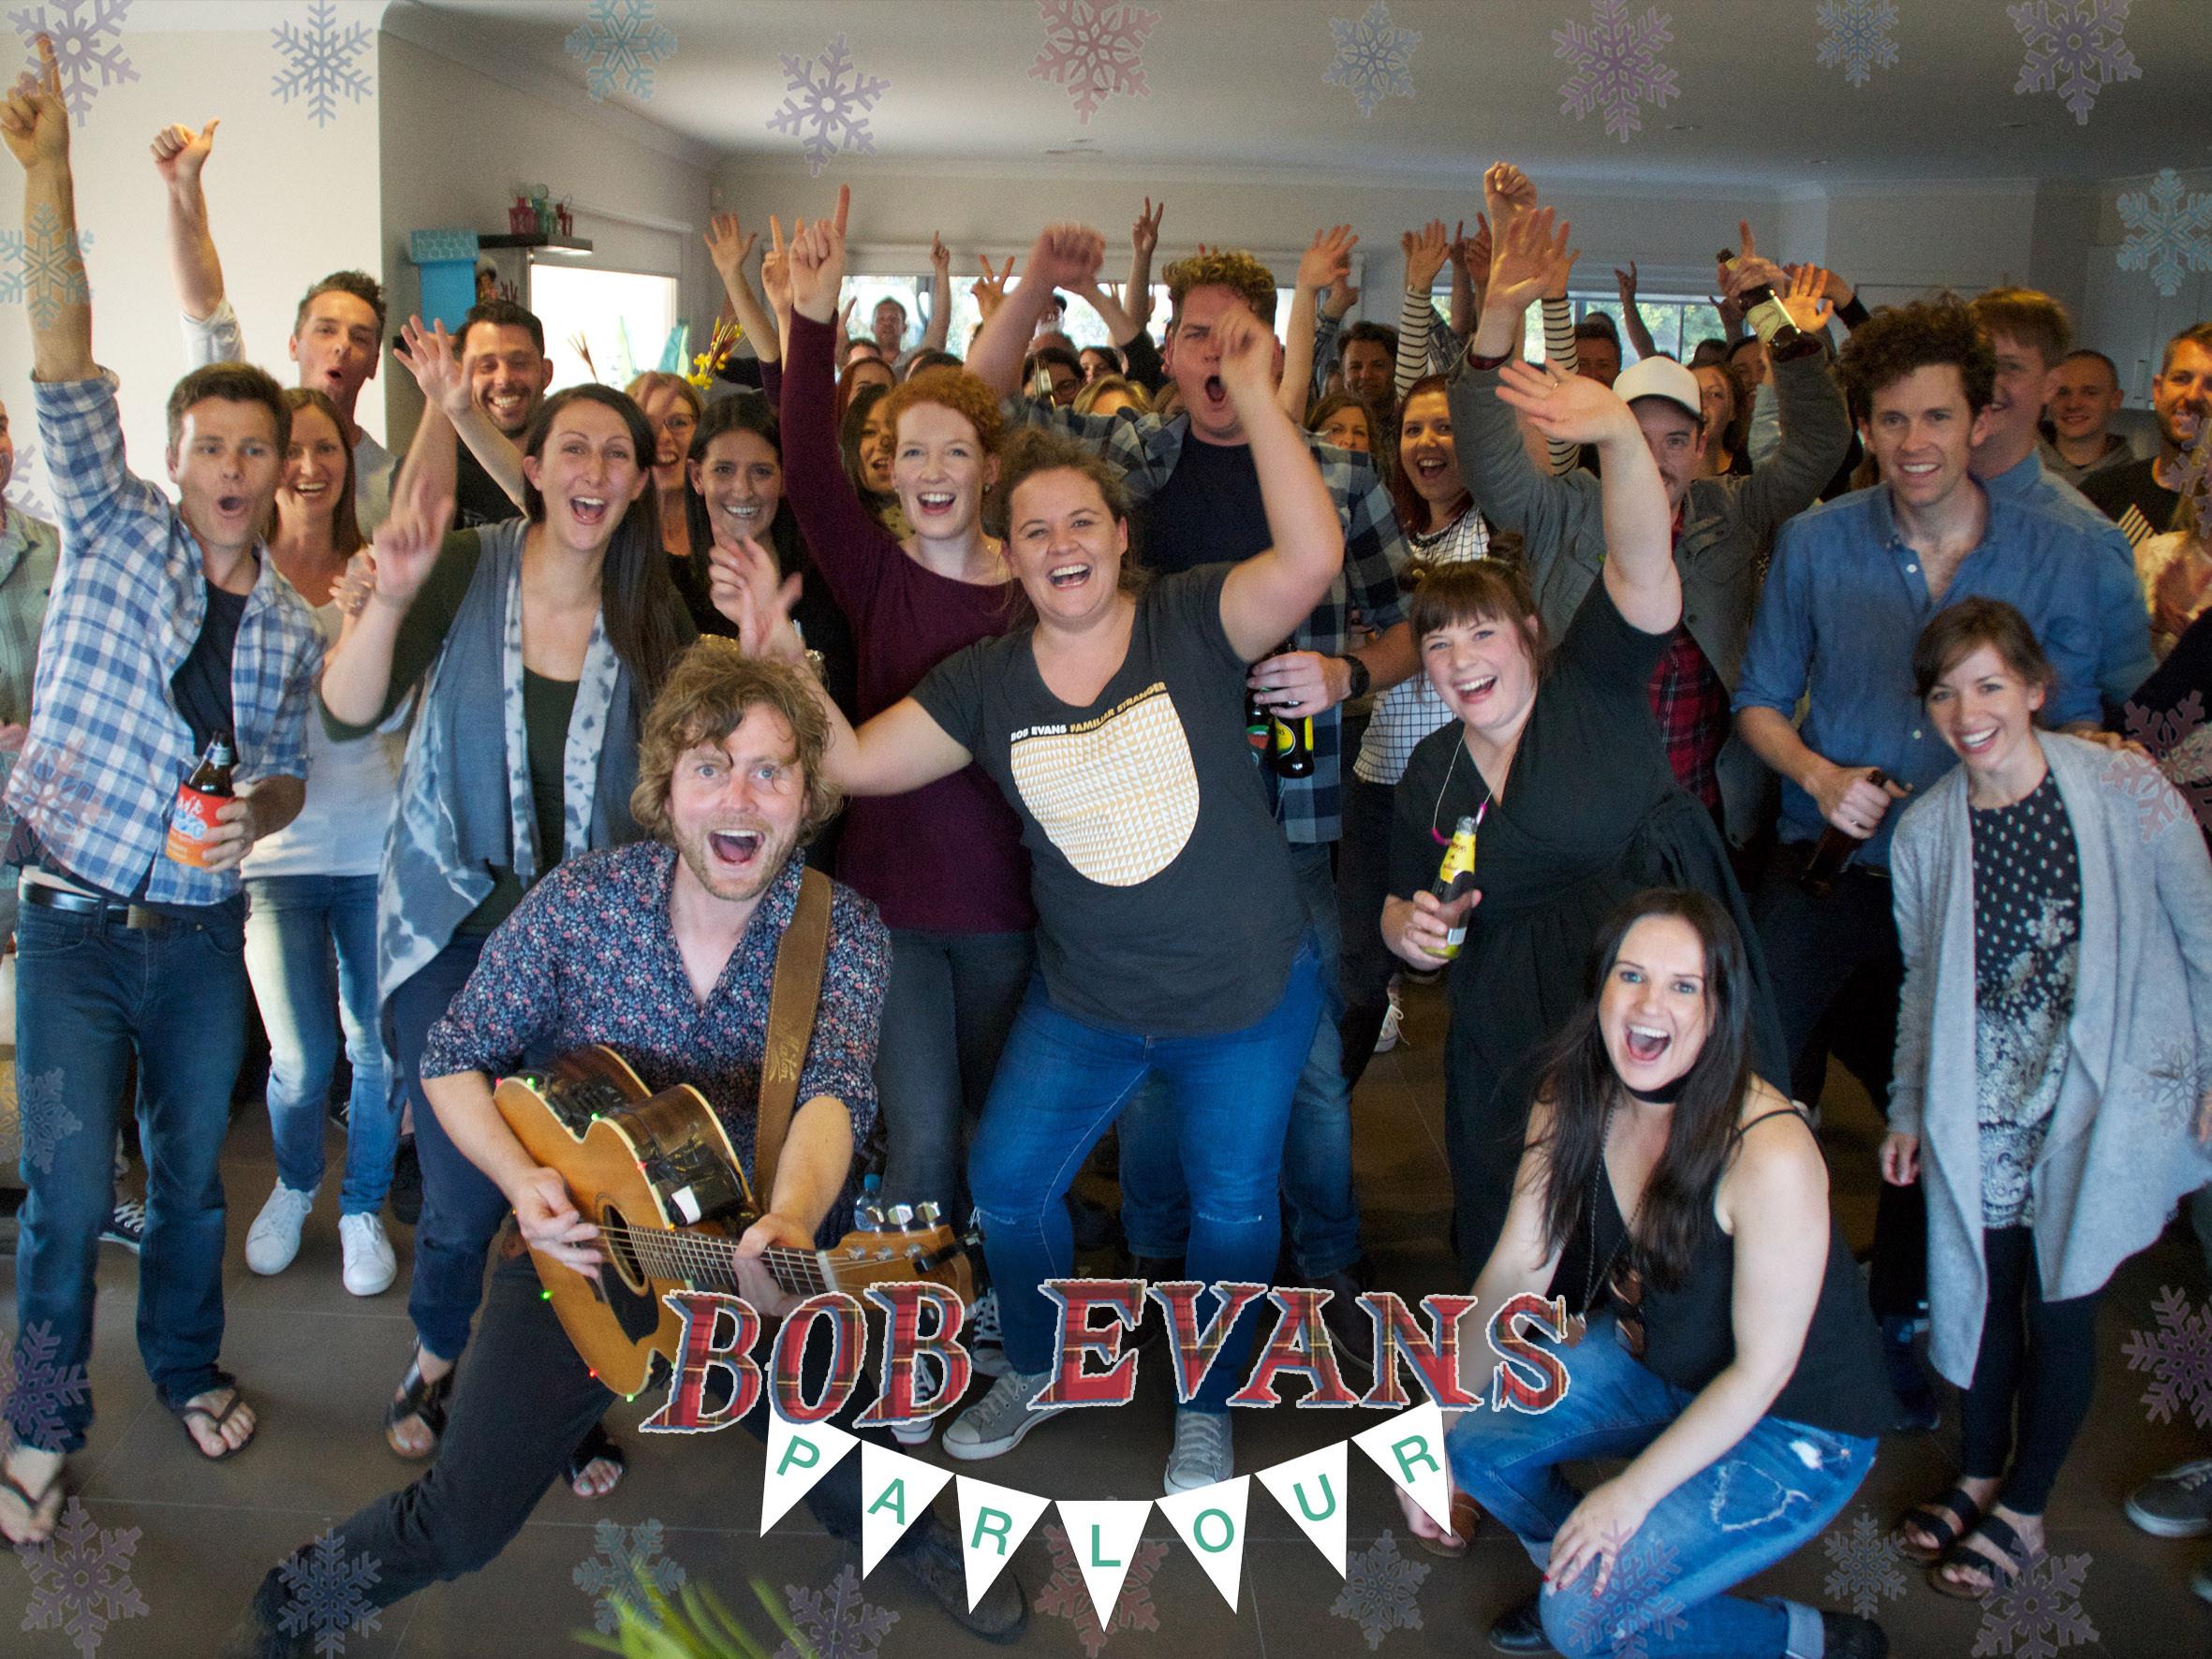 Bob Evans, Hosts and attendees at a Parlour gig in Torquay